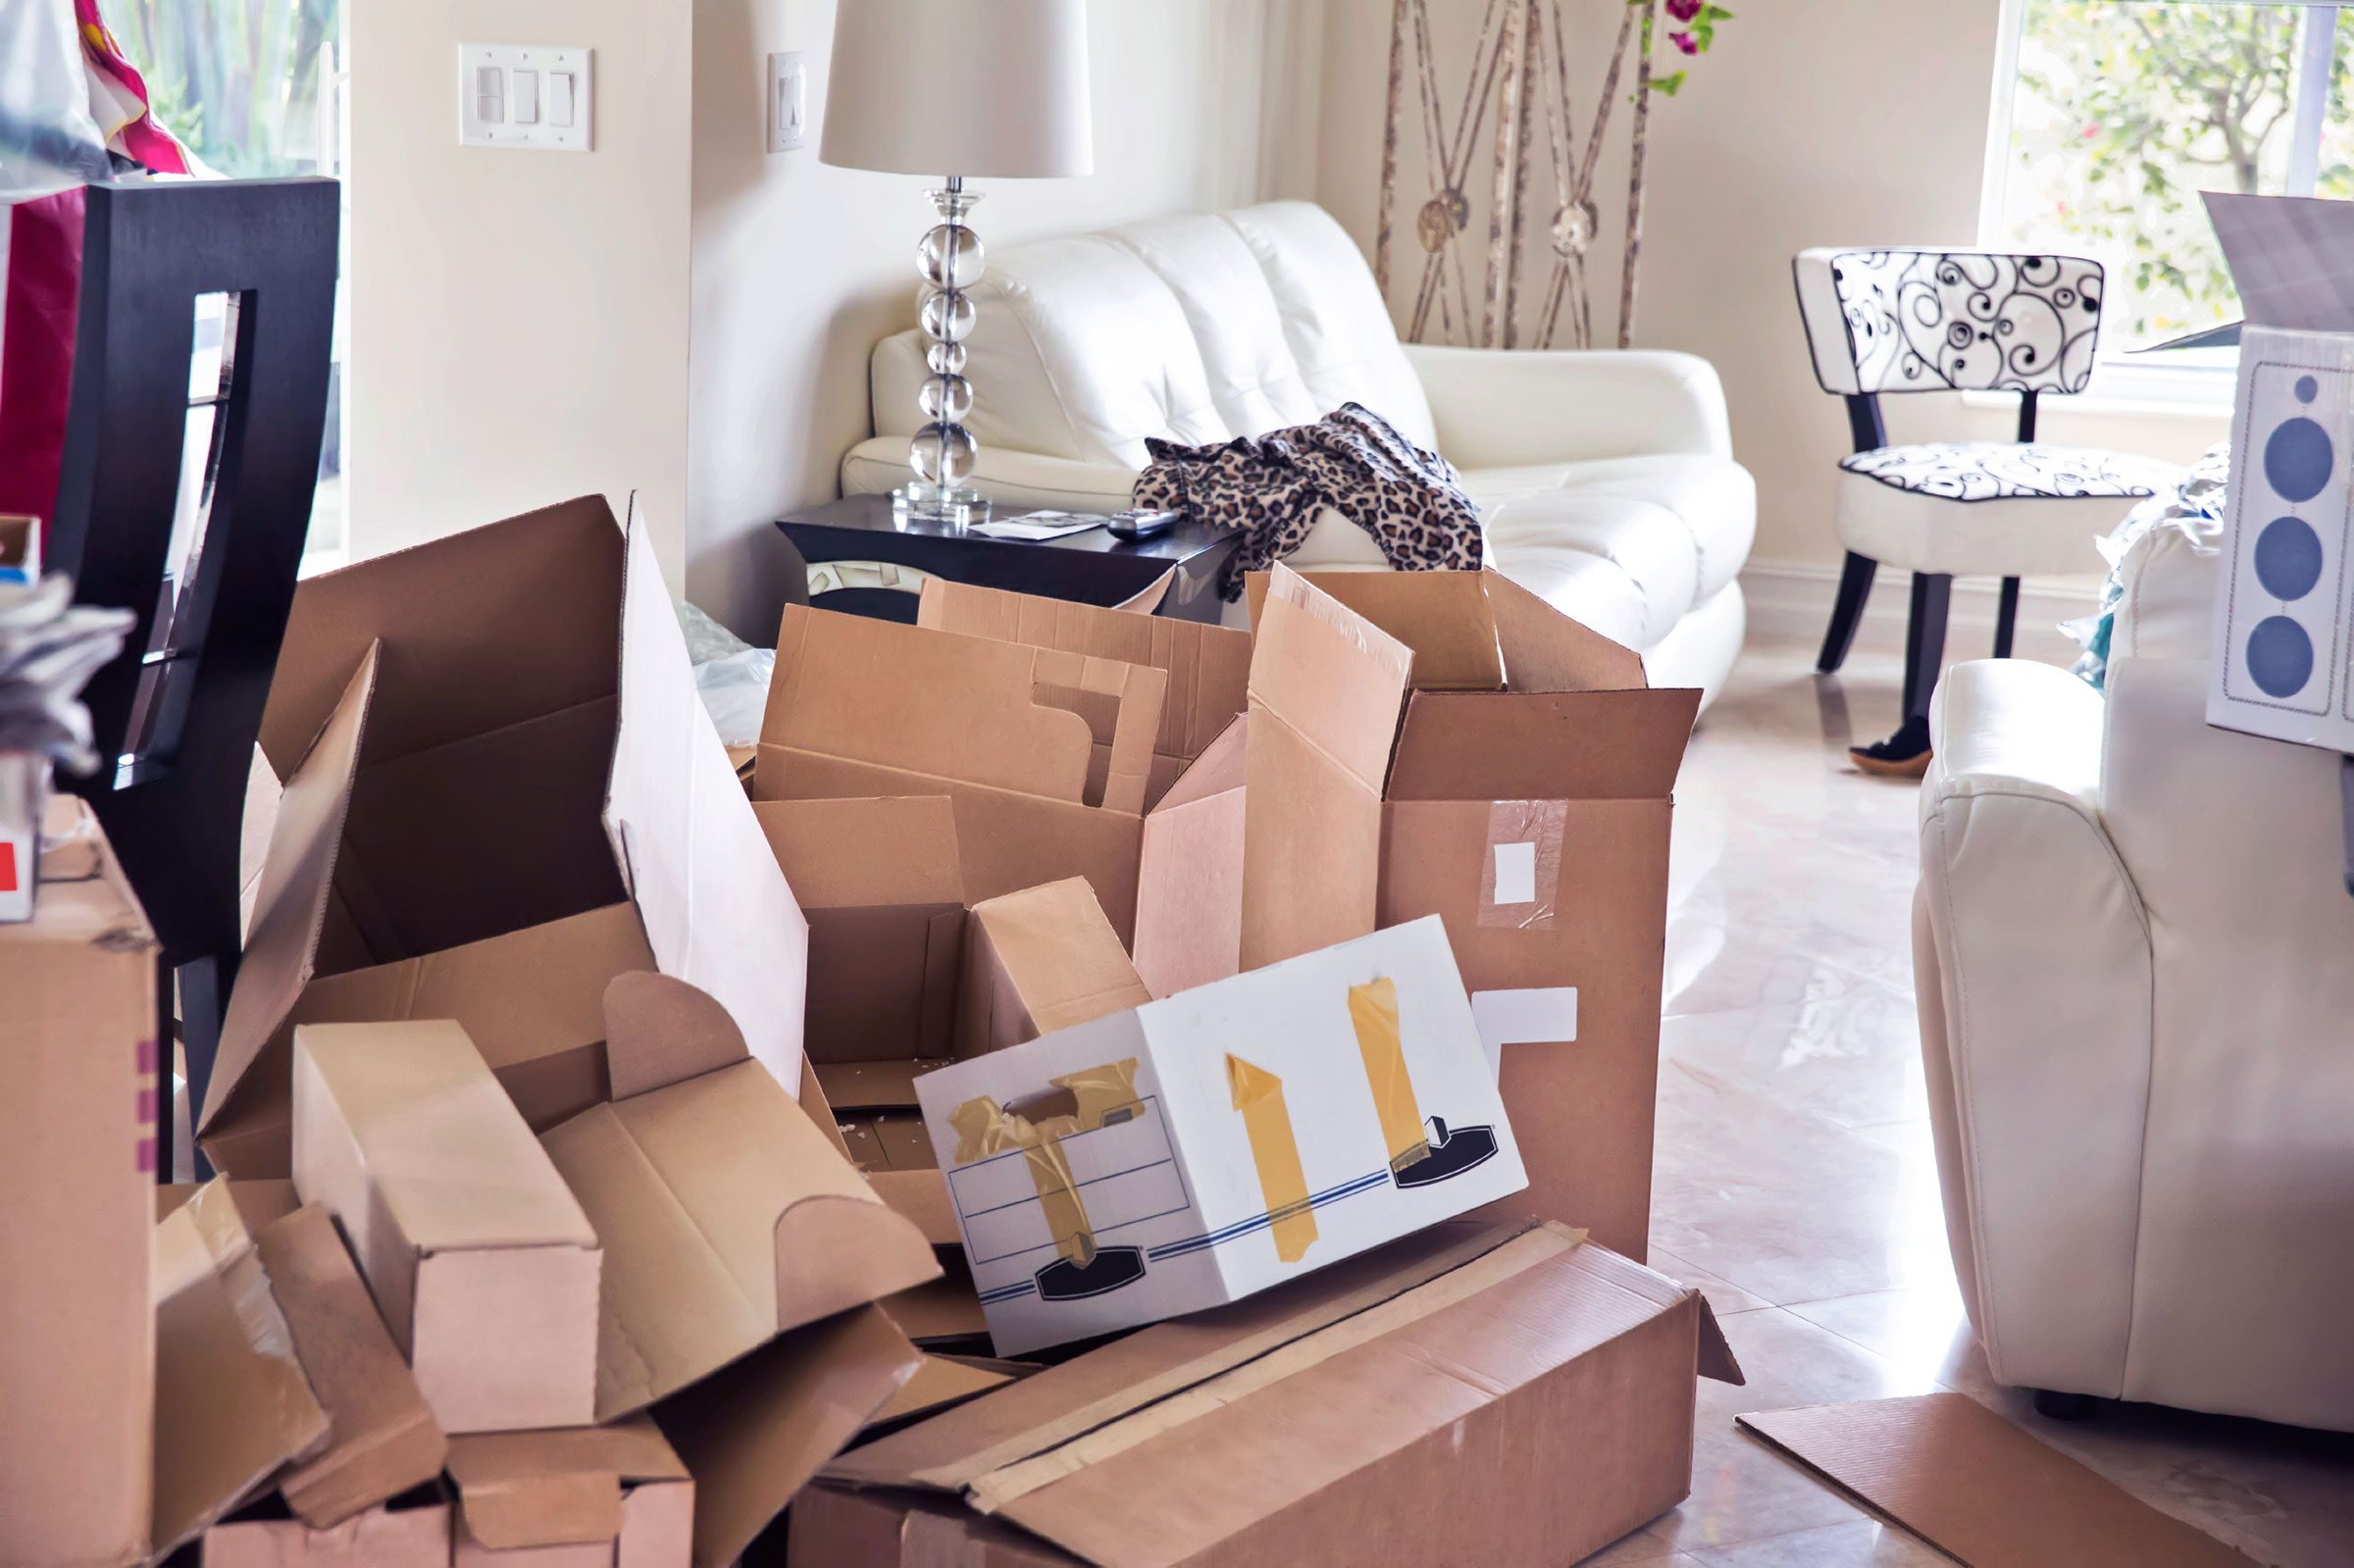 How to clean your living room in 5 minutes - Ditch The Cardboard